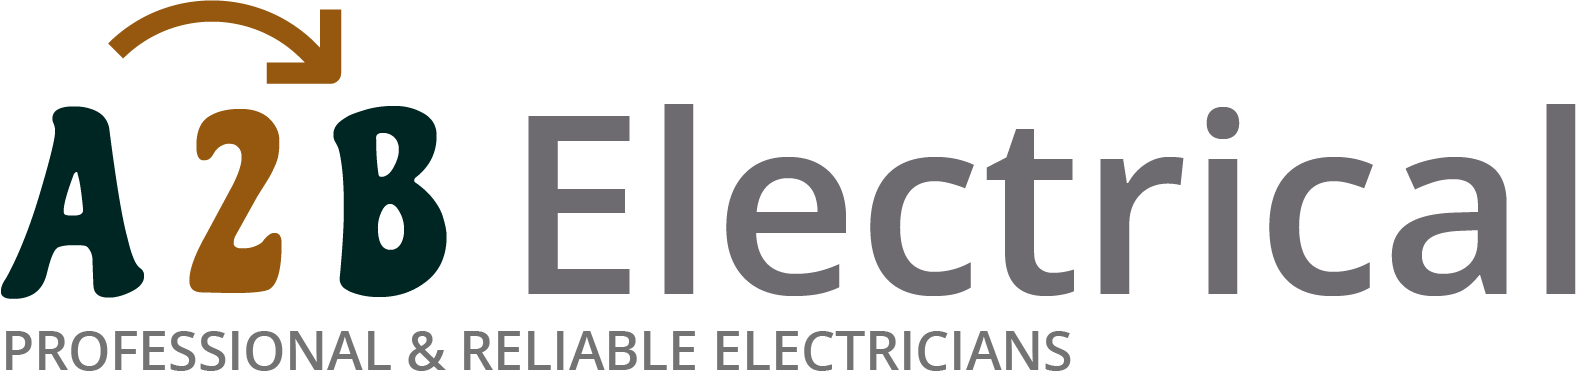 If you have electrical wiring problems in Wickford, we can provide an electrician to have a look for you.